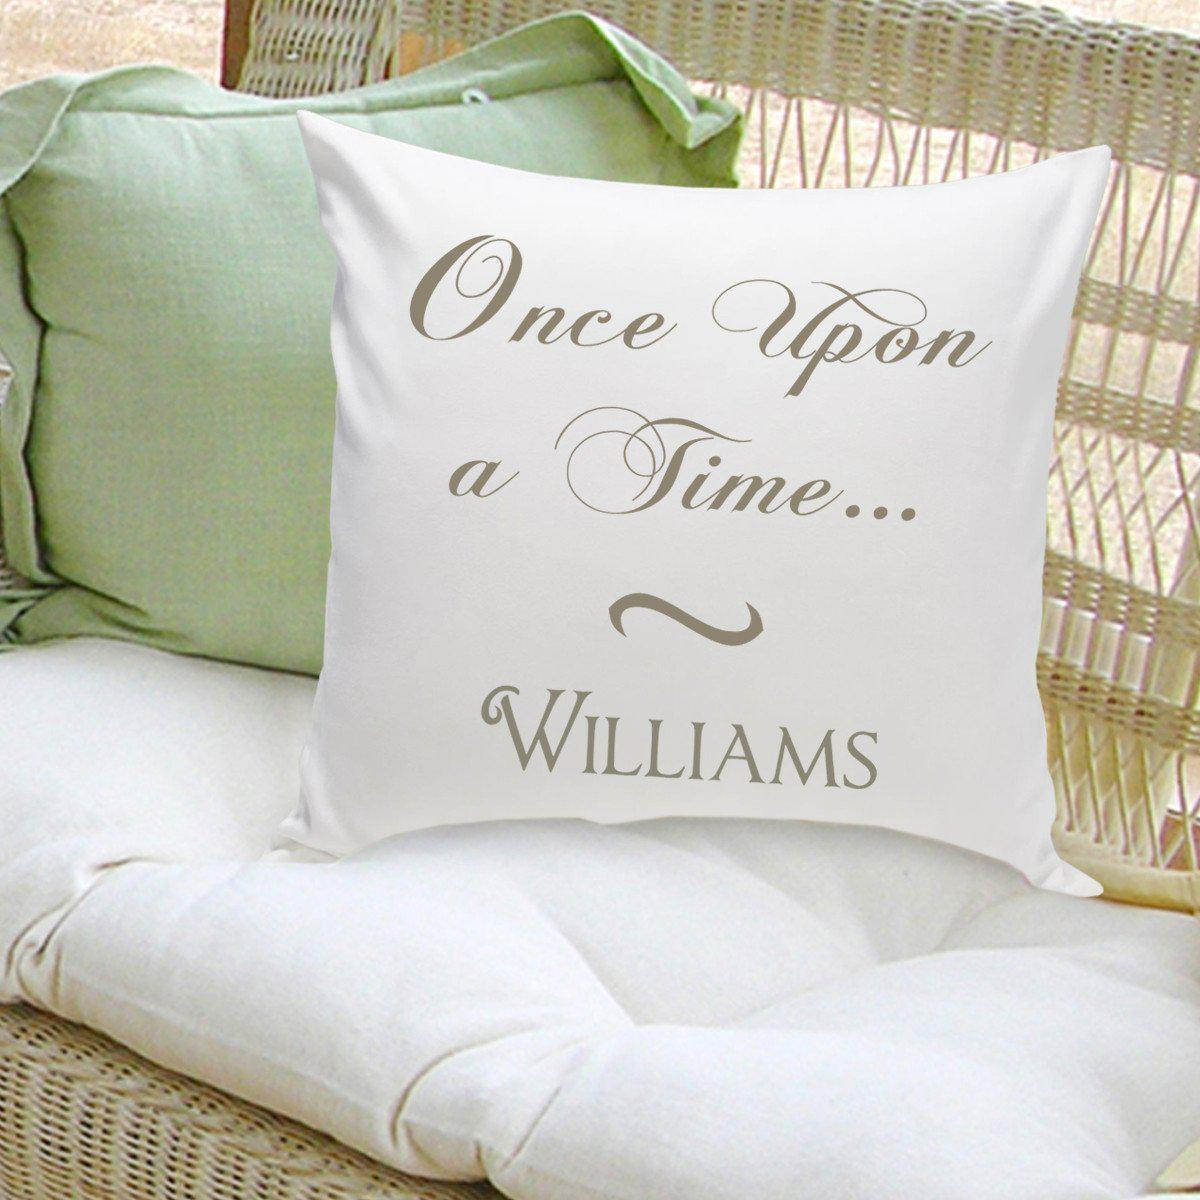 Personalized-Couples-Throw-Pillows-Once-Upon-A-Time